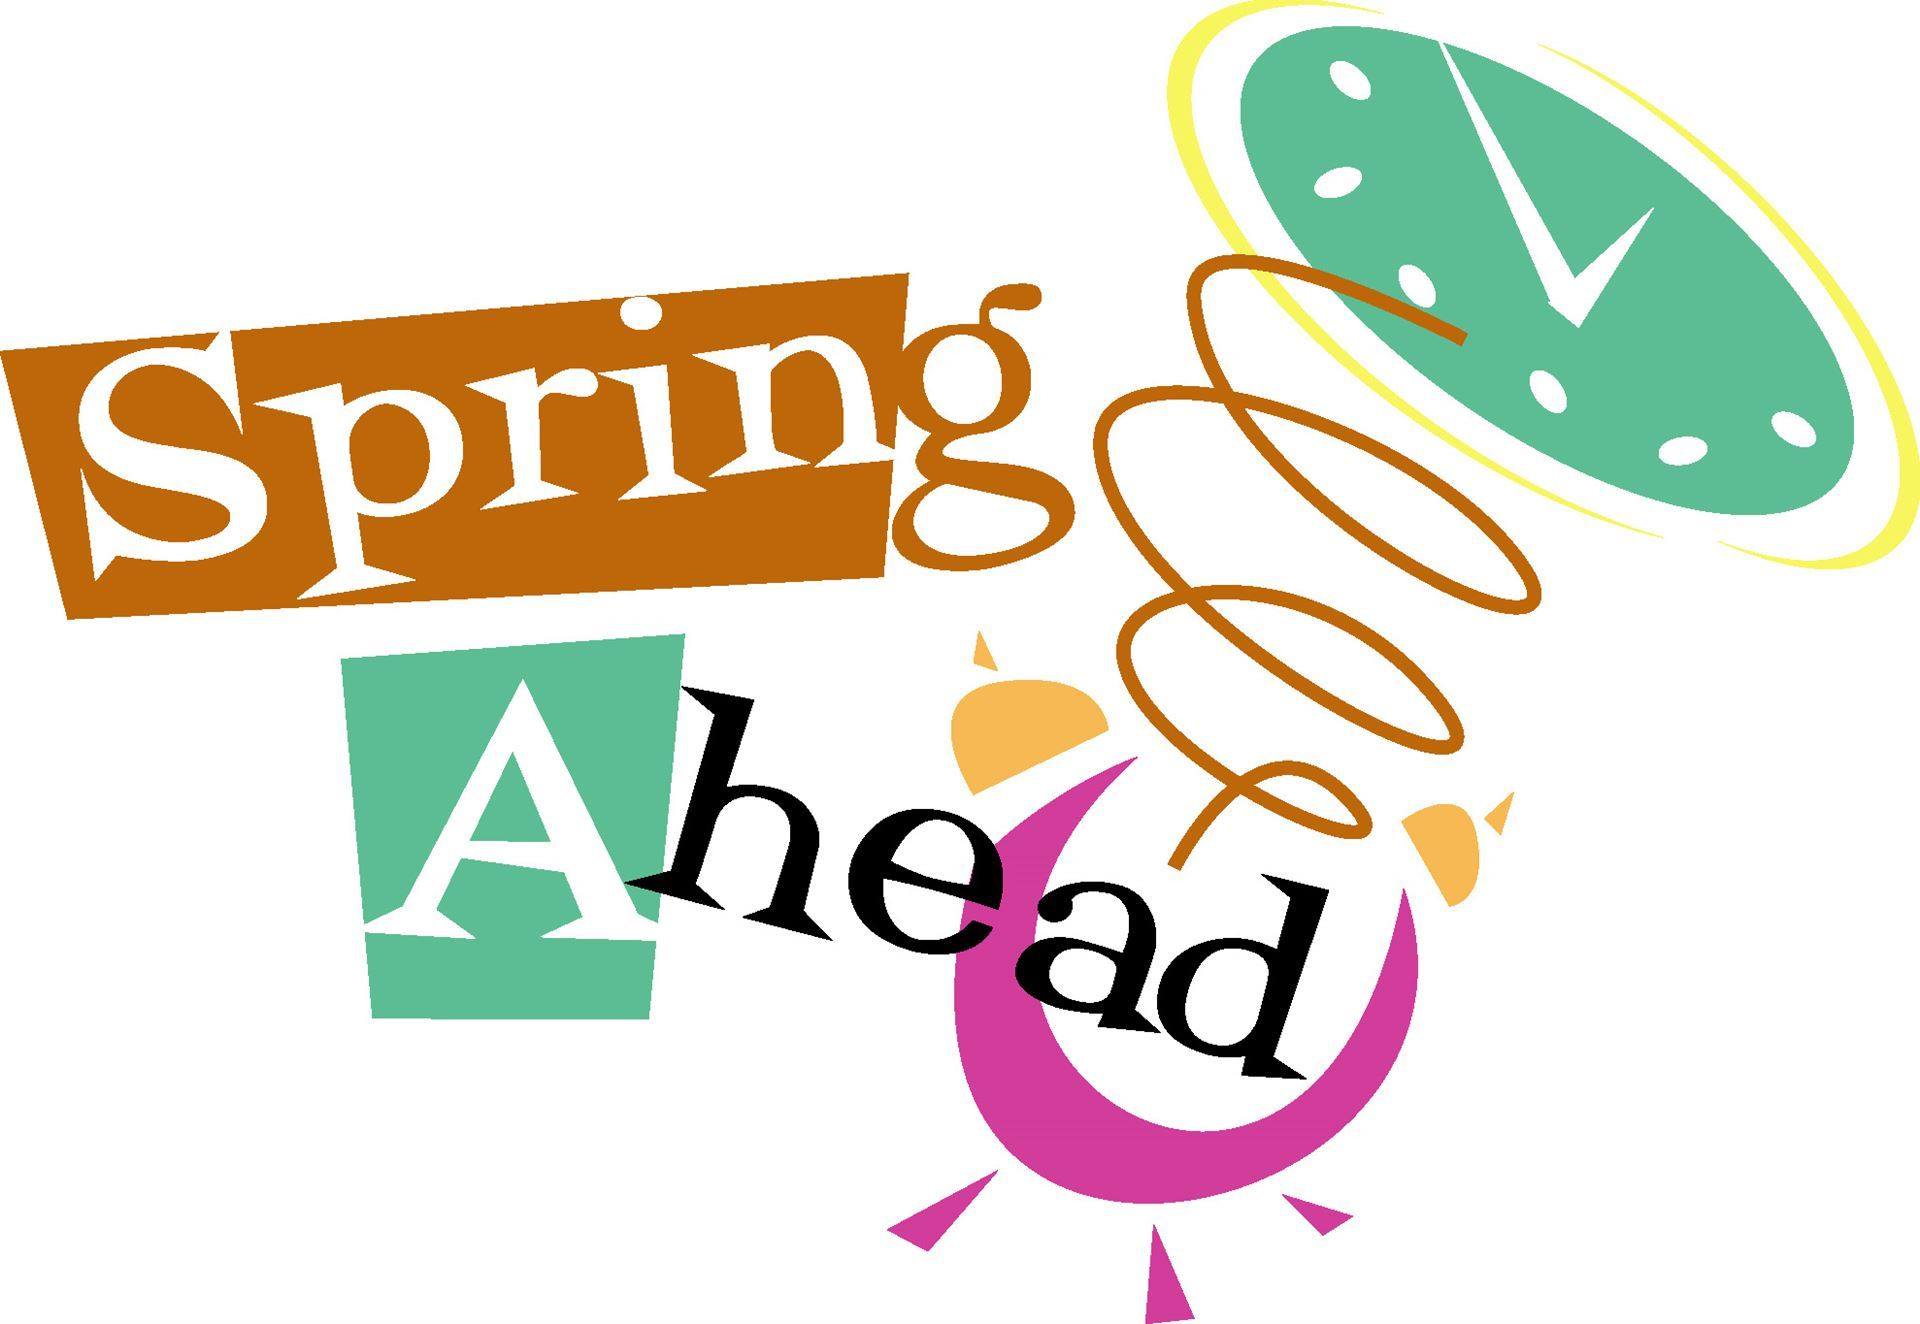 Turn clocks ahead 2016 clipart svg freeuse stock Antelope Club - Spring Ahead - Set Your Clocks One Hour Forward! svg freeuse stock